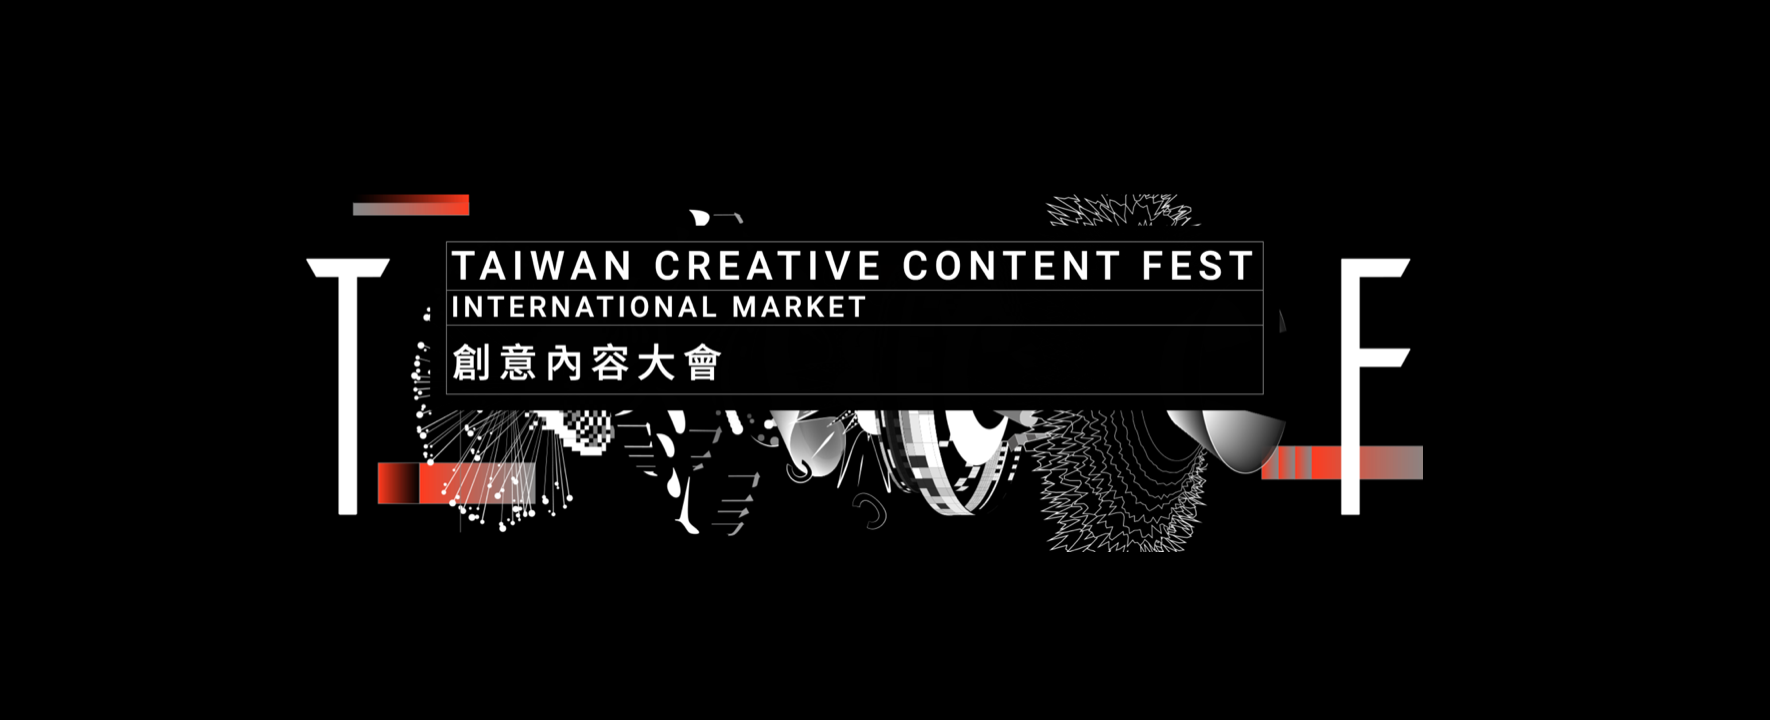 From Taipei TV Festival to an all new Taiwan Creative Content Fest